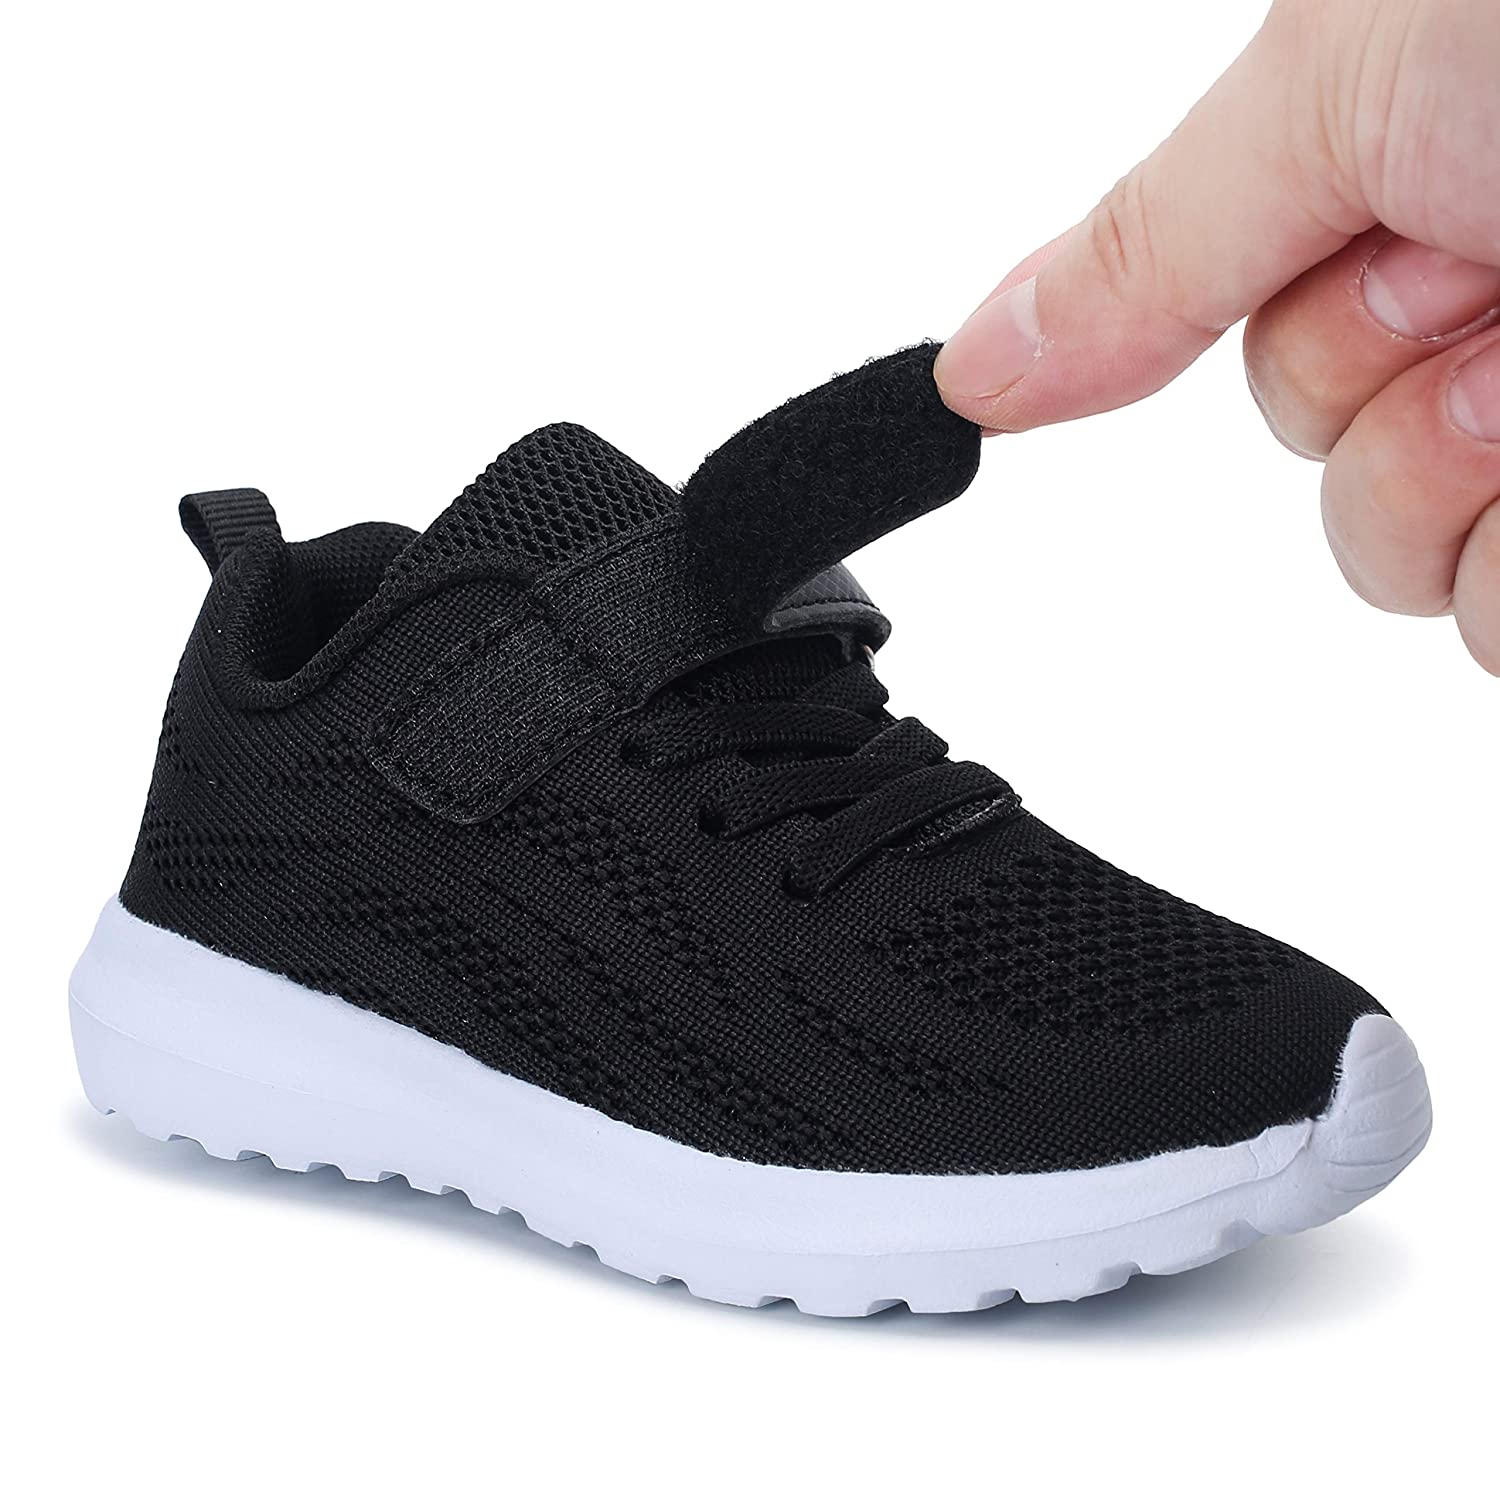 7UK Child-4UK Nishiguang Toddler Kids Sneakers Lightweight Breathable Shoes Casual Trainer for Boys//Grils